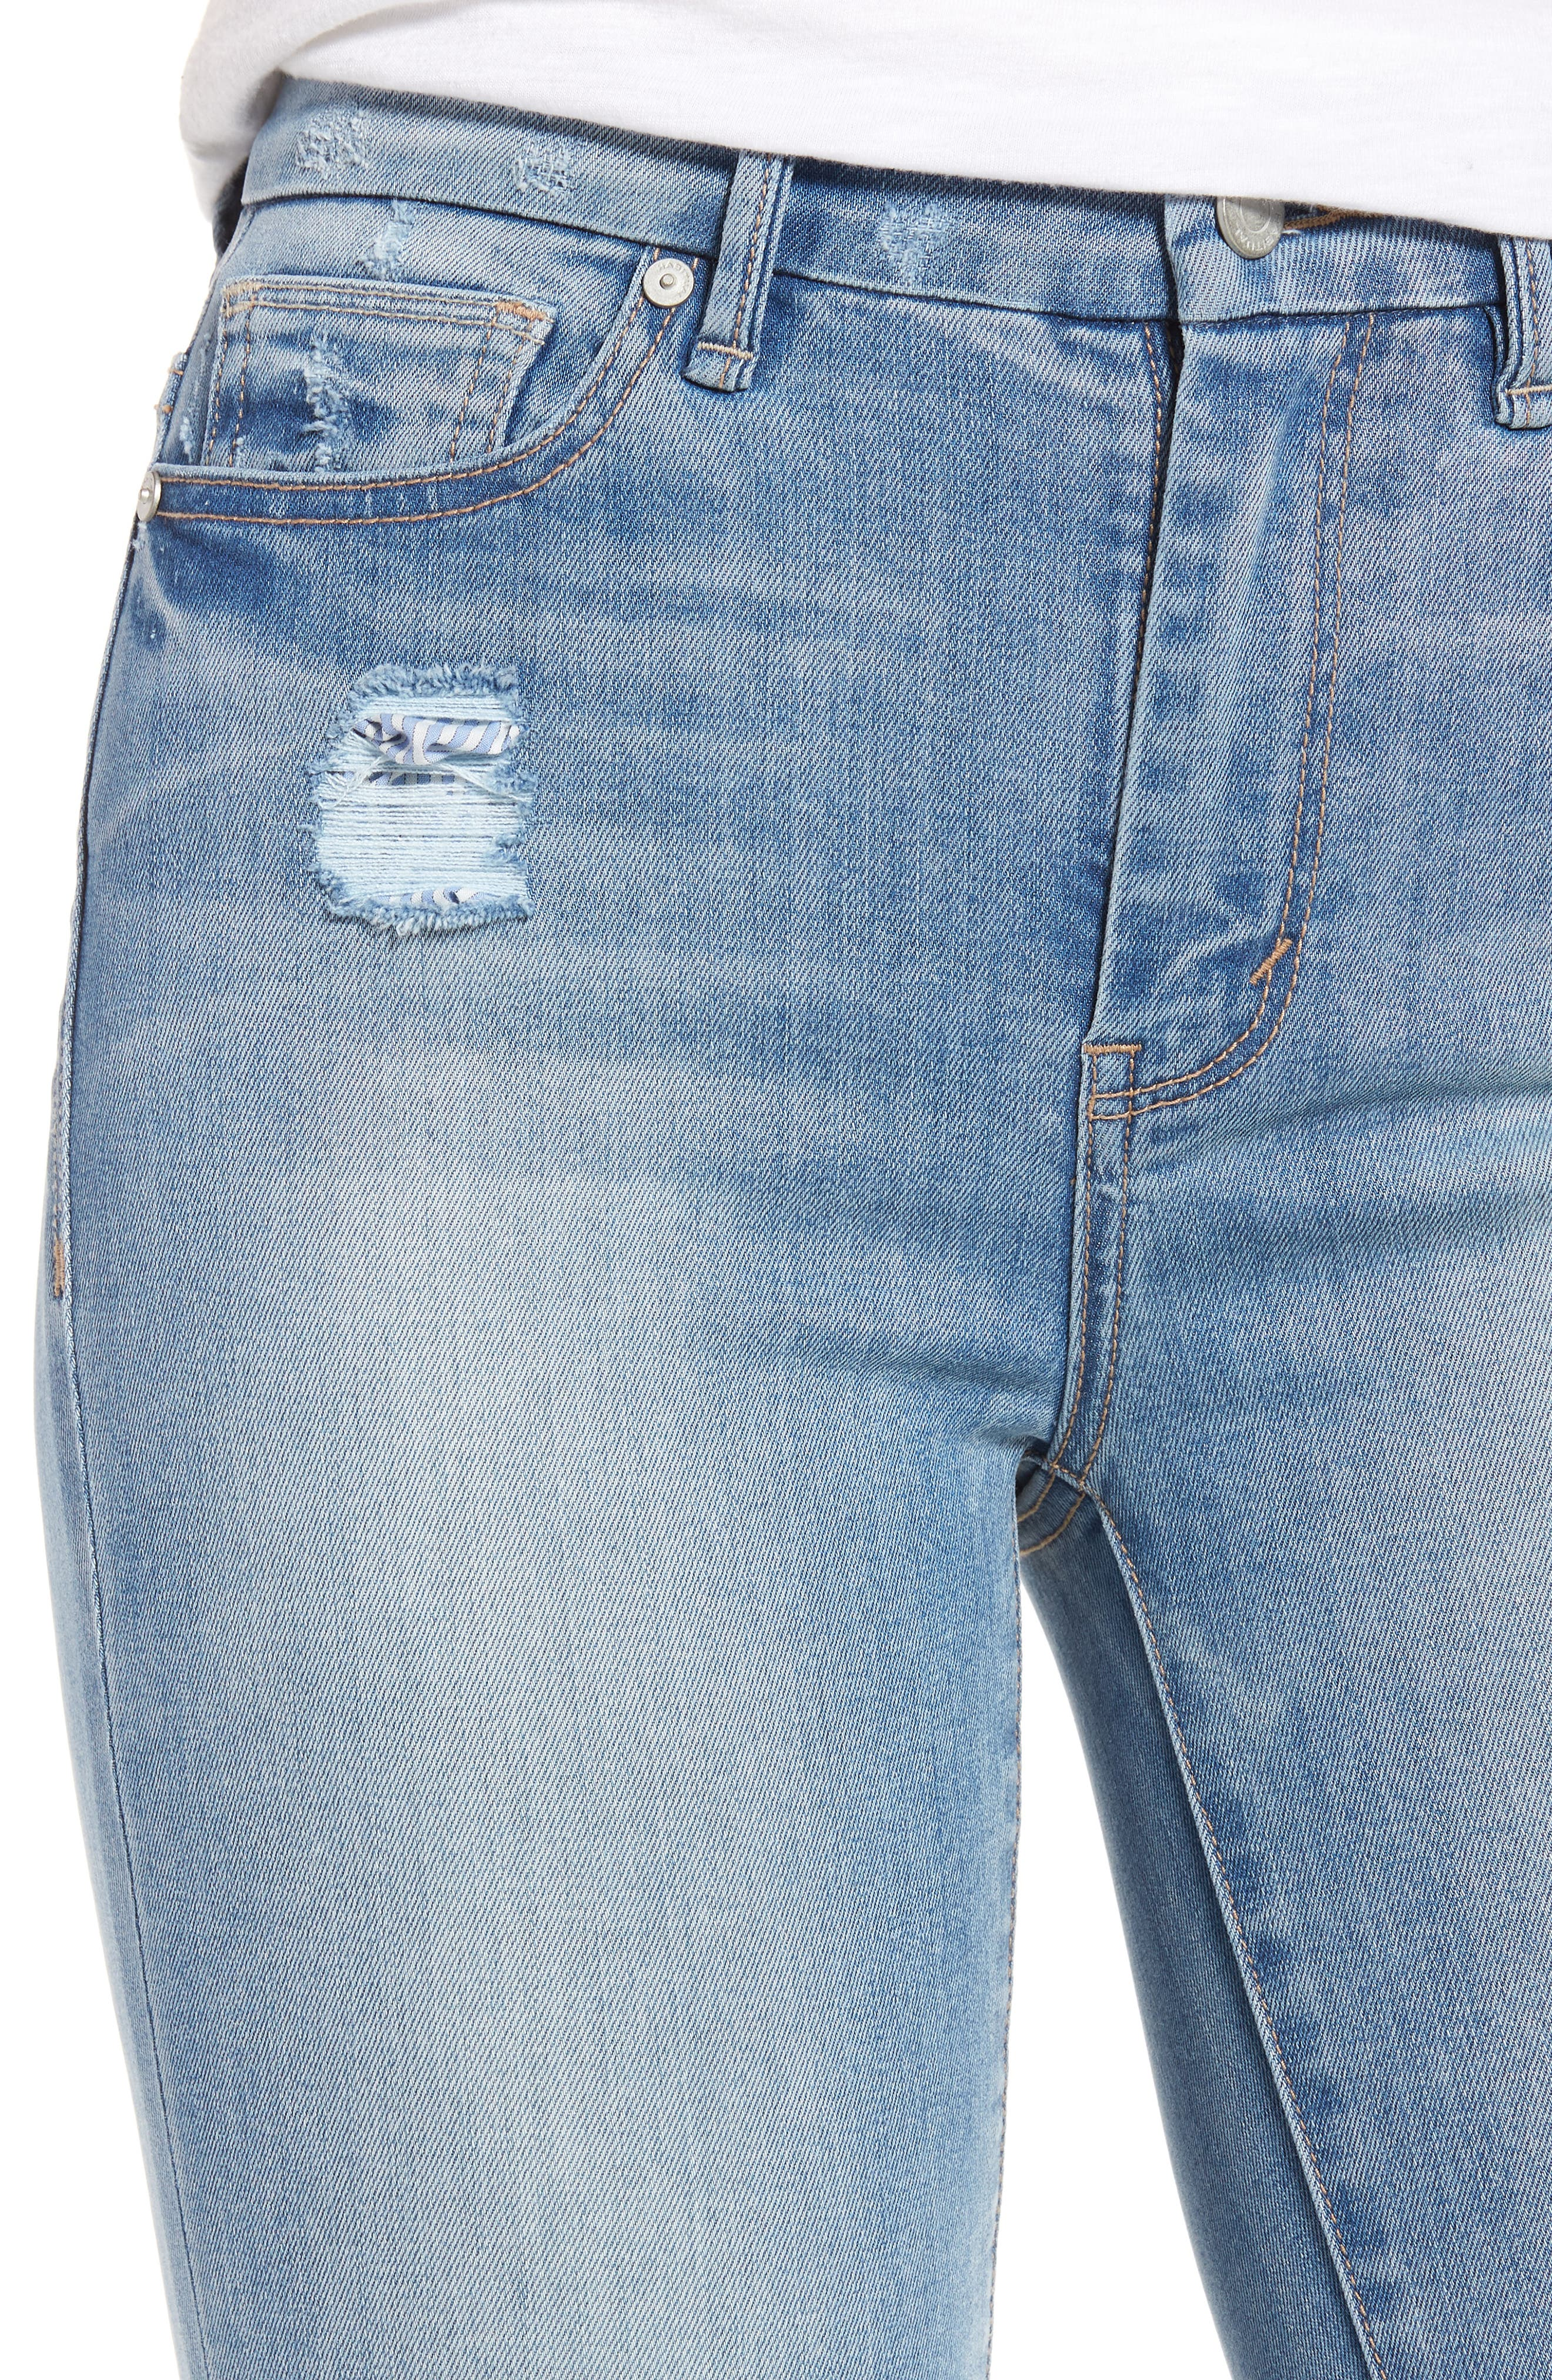 Cressa High Rise Ankle Skinny Jeans,                             Alternate thumbnail 4, color,                             Varnish